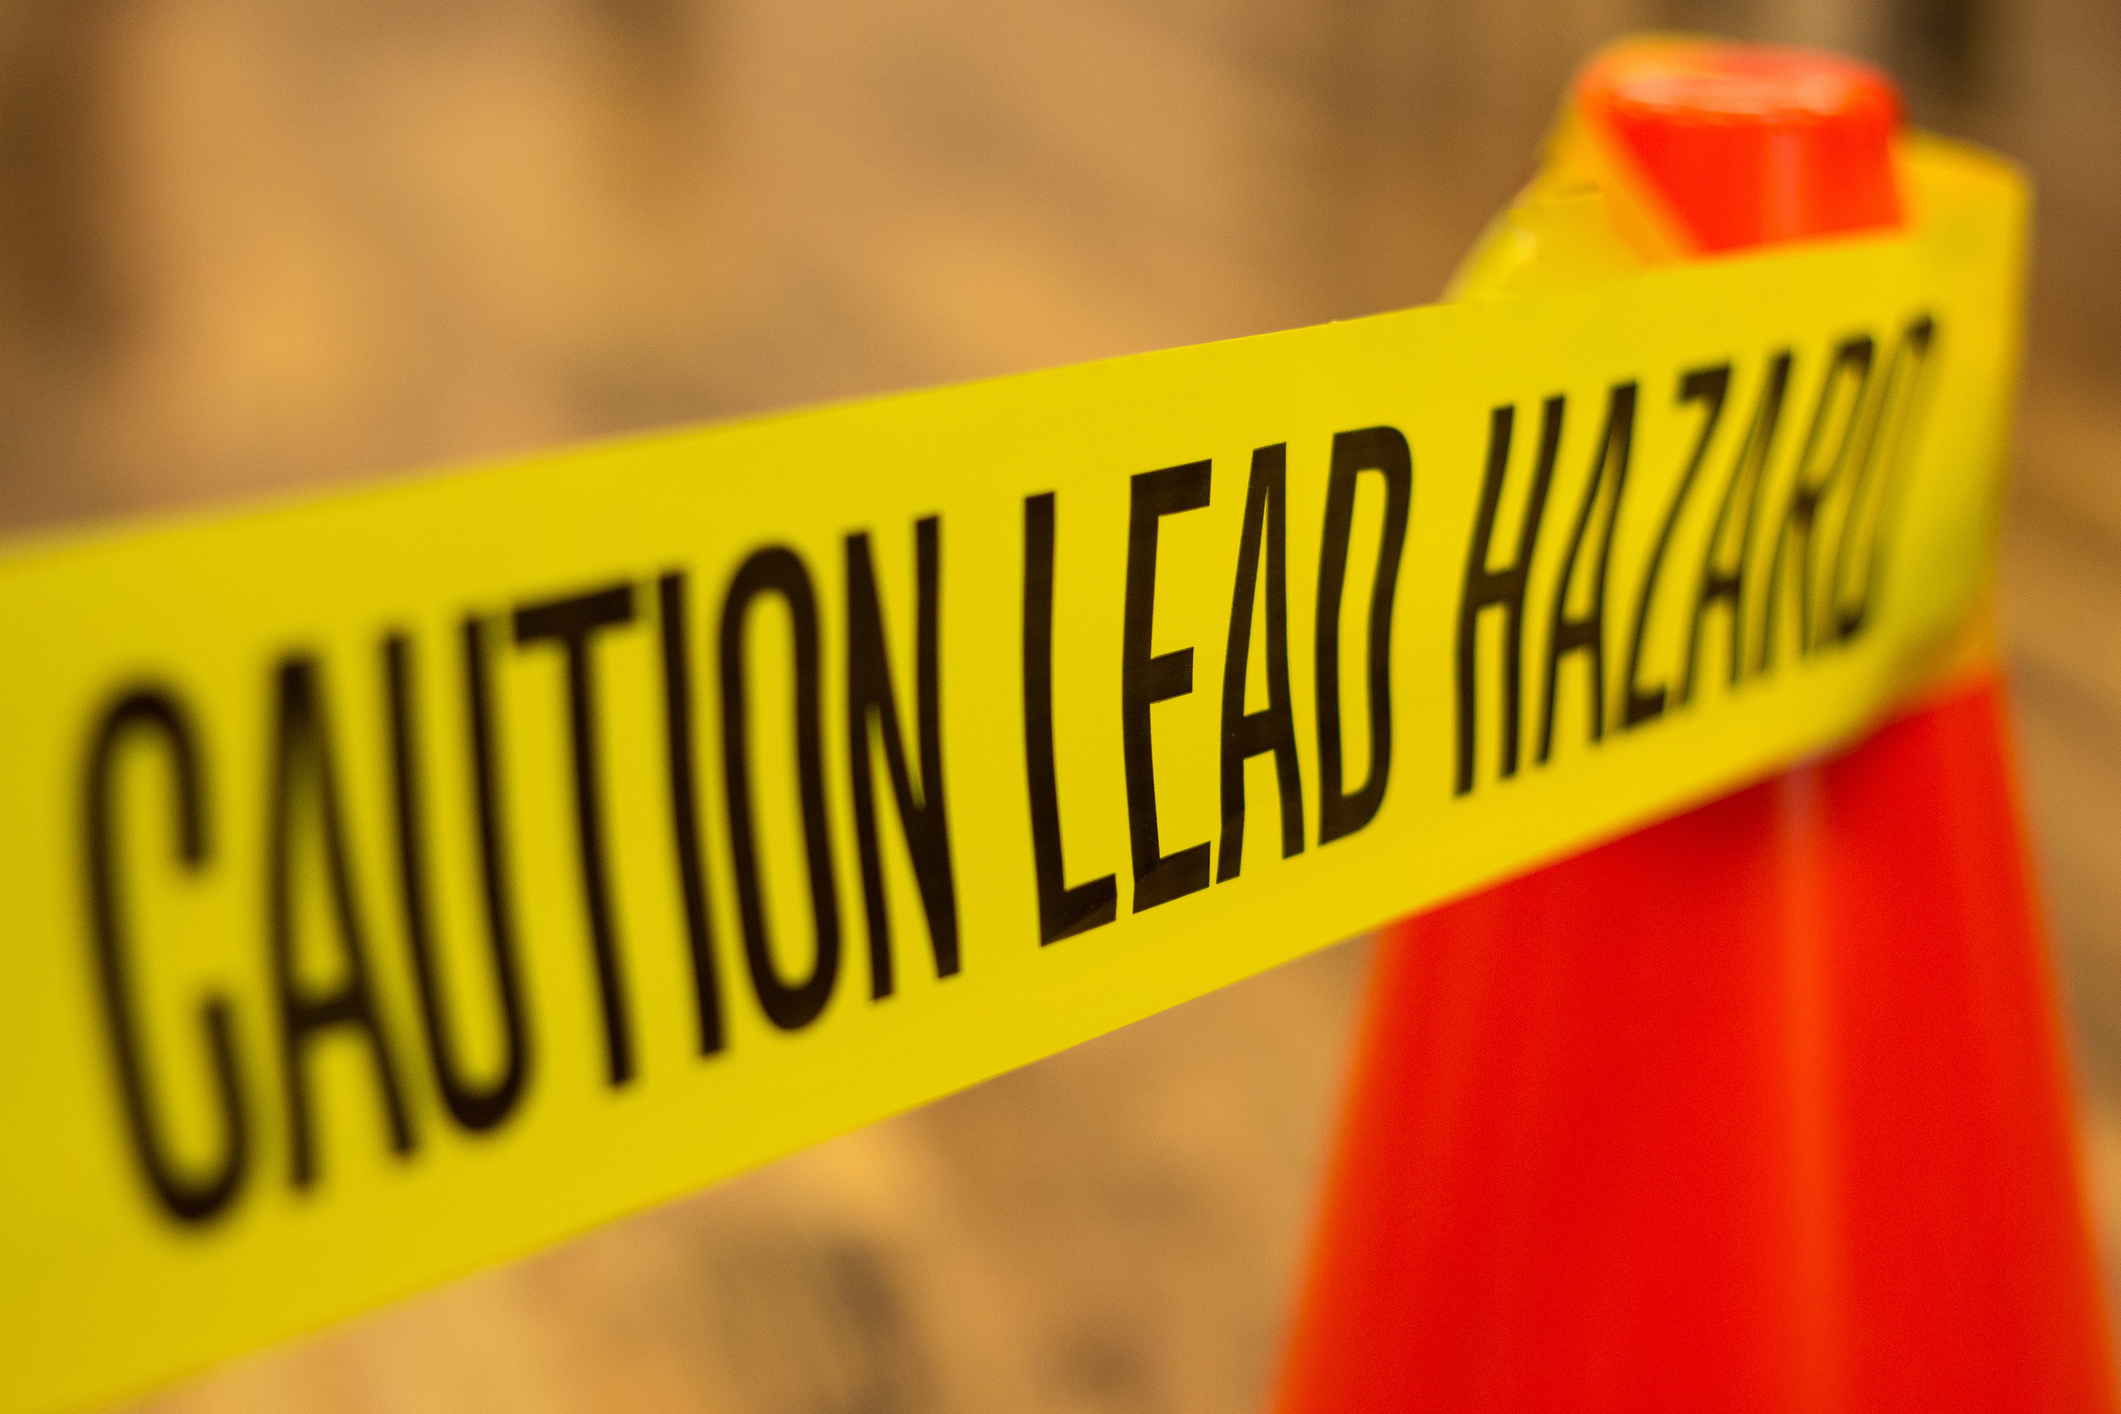 Leading health organizations have said there are no safe levels of lead.